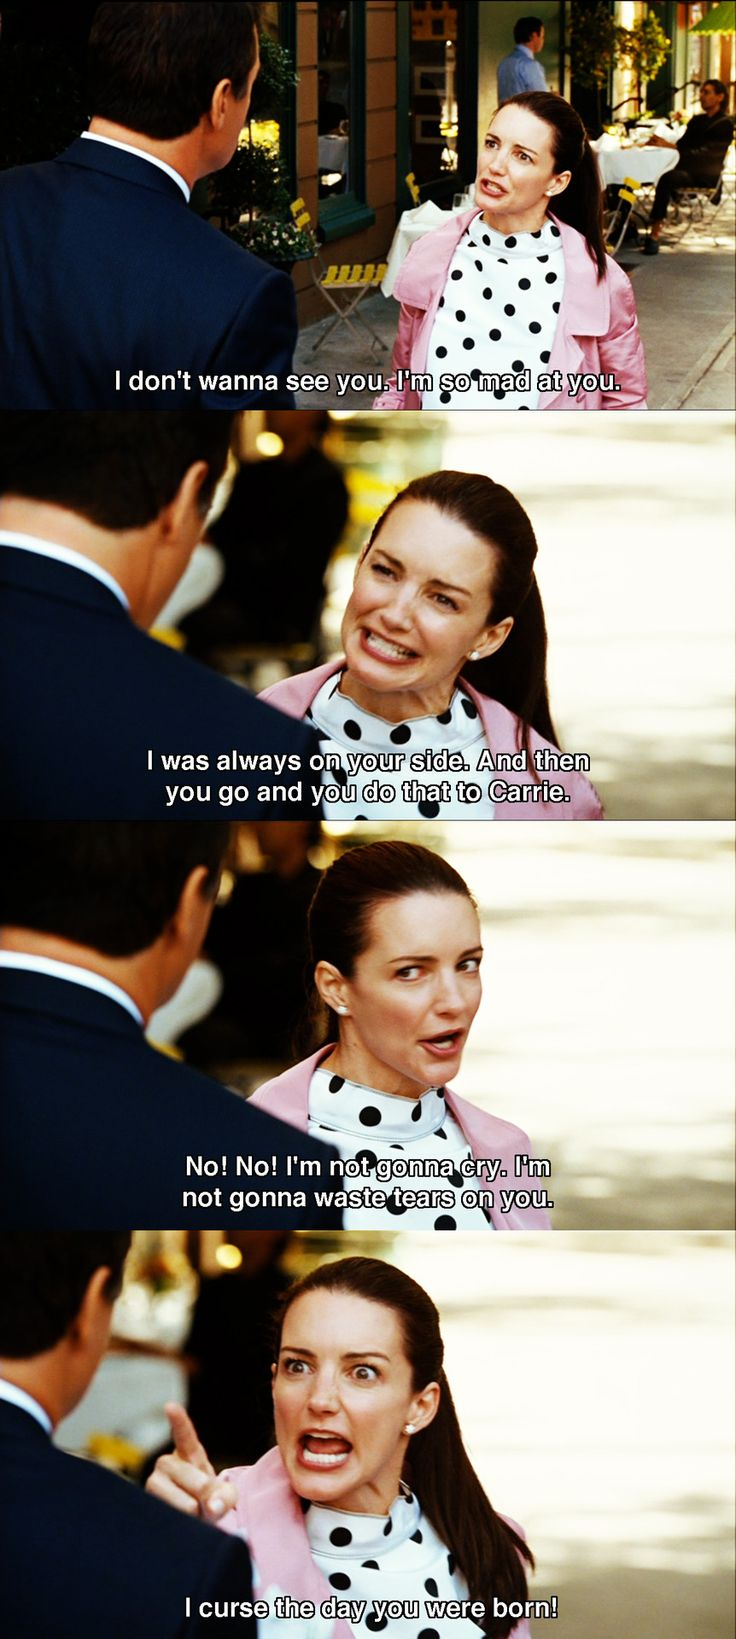 """""""I curse the day you were born."""" - Charlotte to Big, Sex and the City // #SATC #SATCQuotes"""